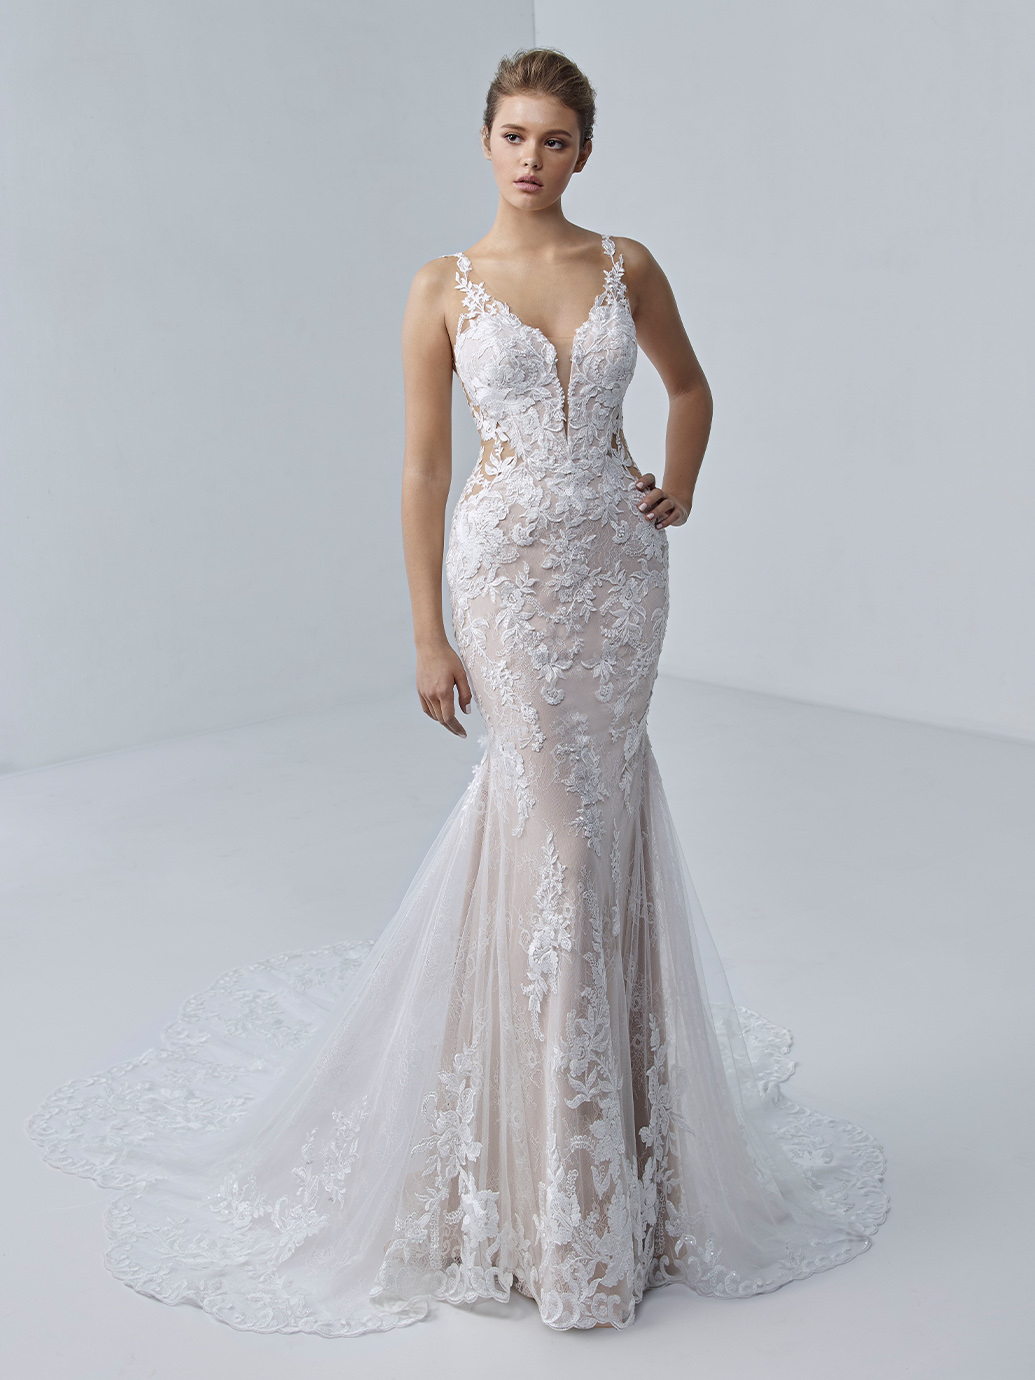 étoile-by-enzoani-2021-Dress-Finderétoile-by-enzoani-2021-Dress-Finder-Adrianna